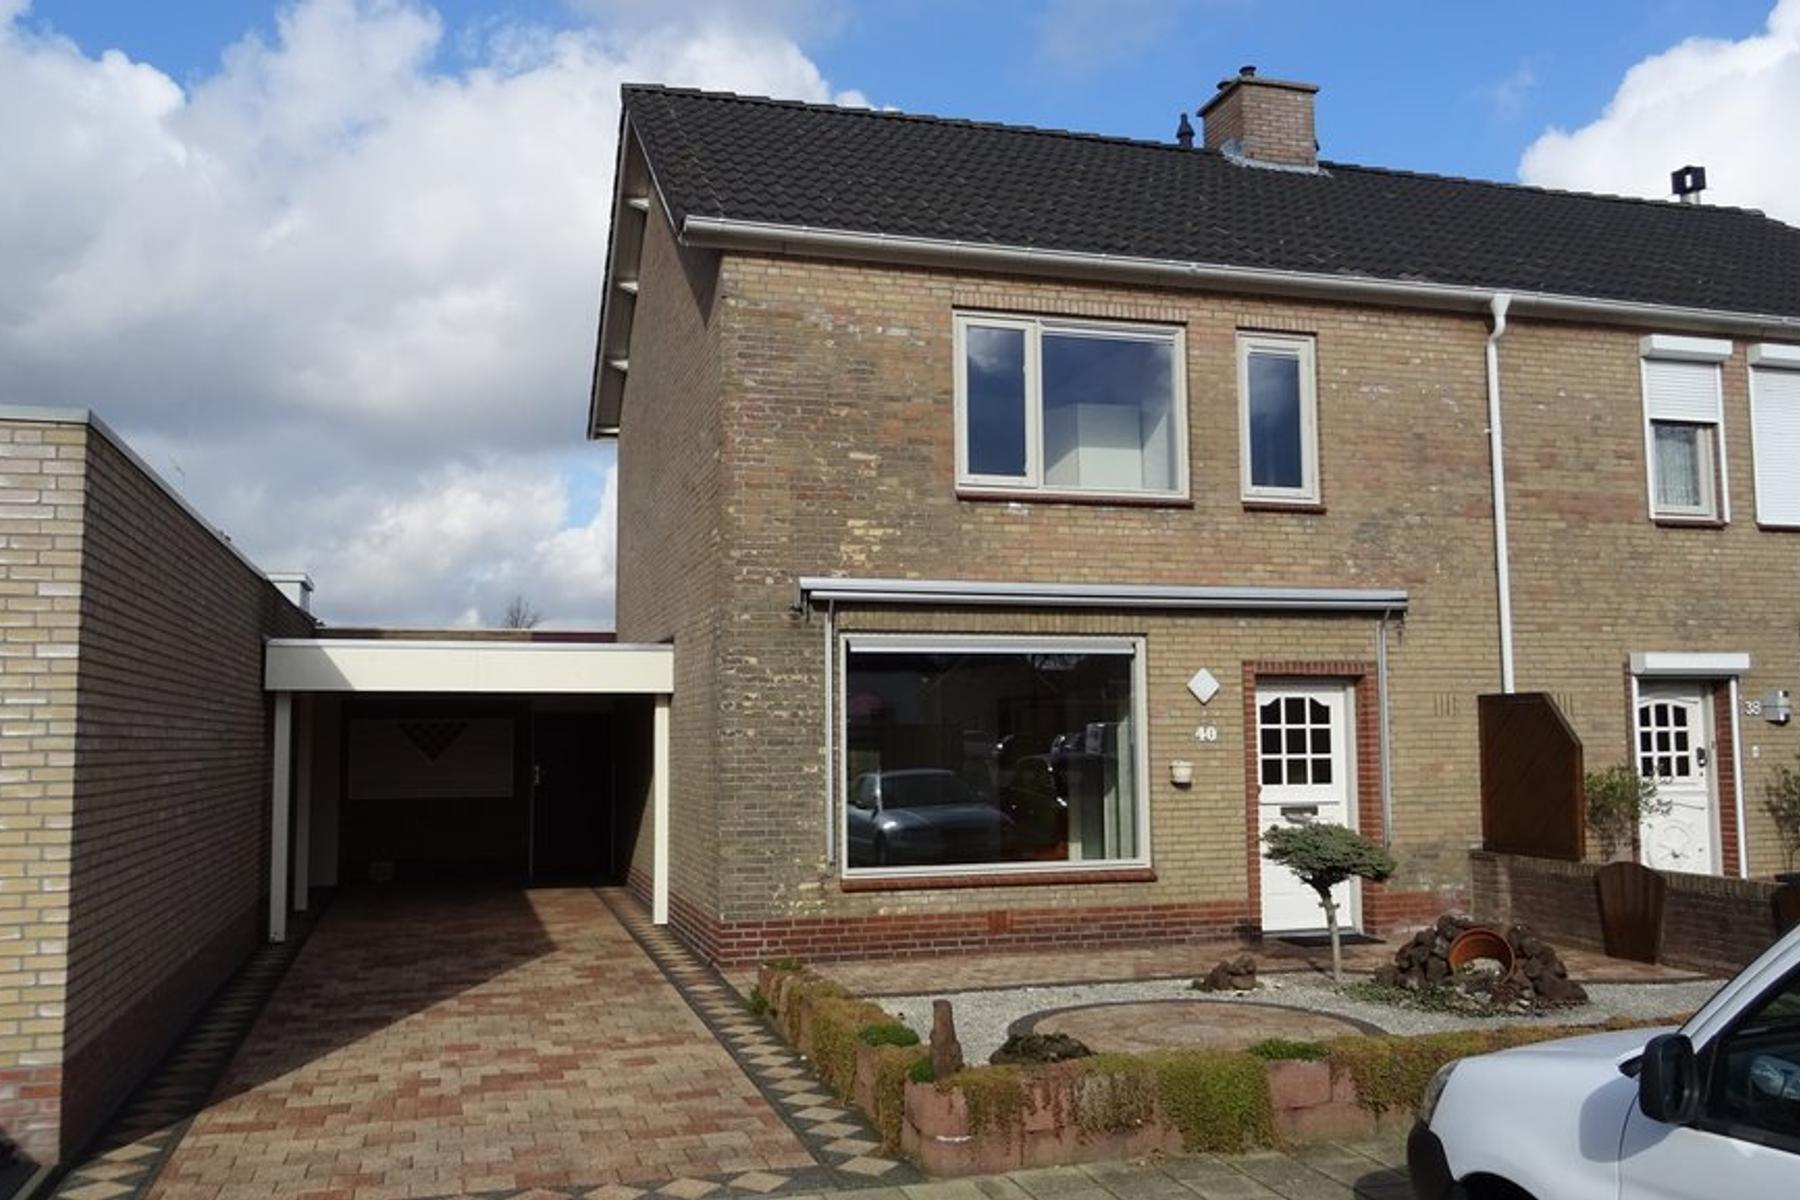 Boterbloemstraat 40 in St. Willebrord 4711 GX